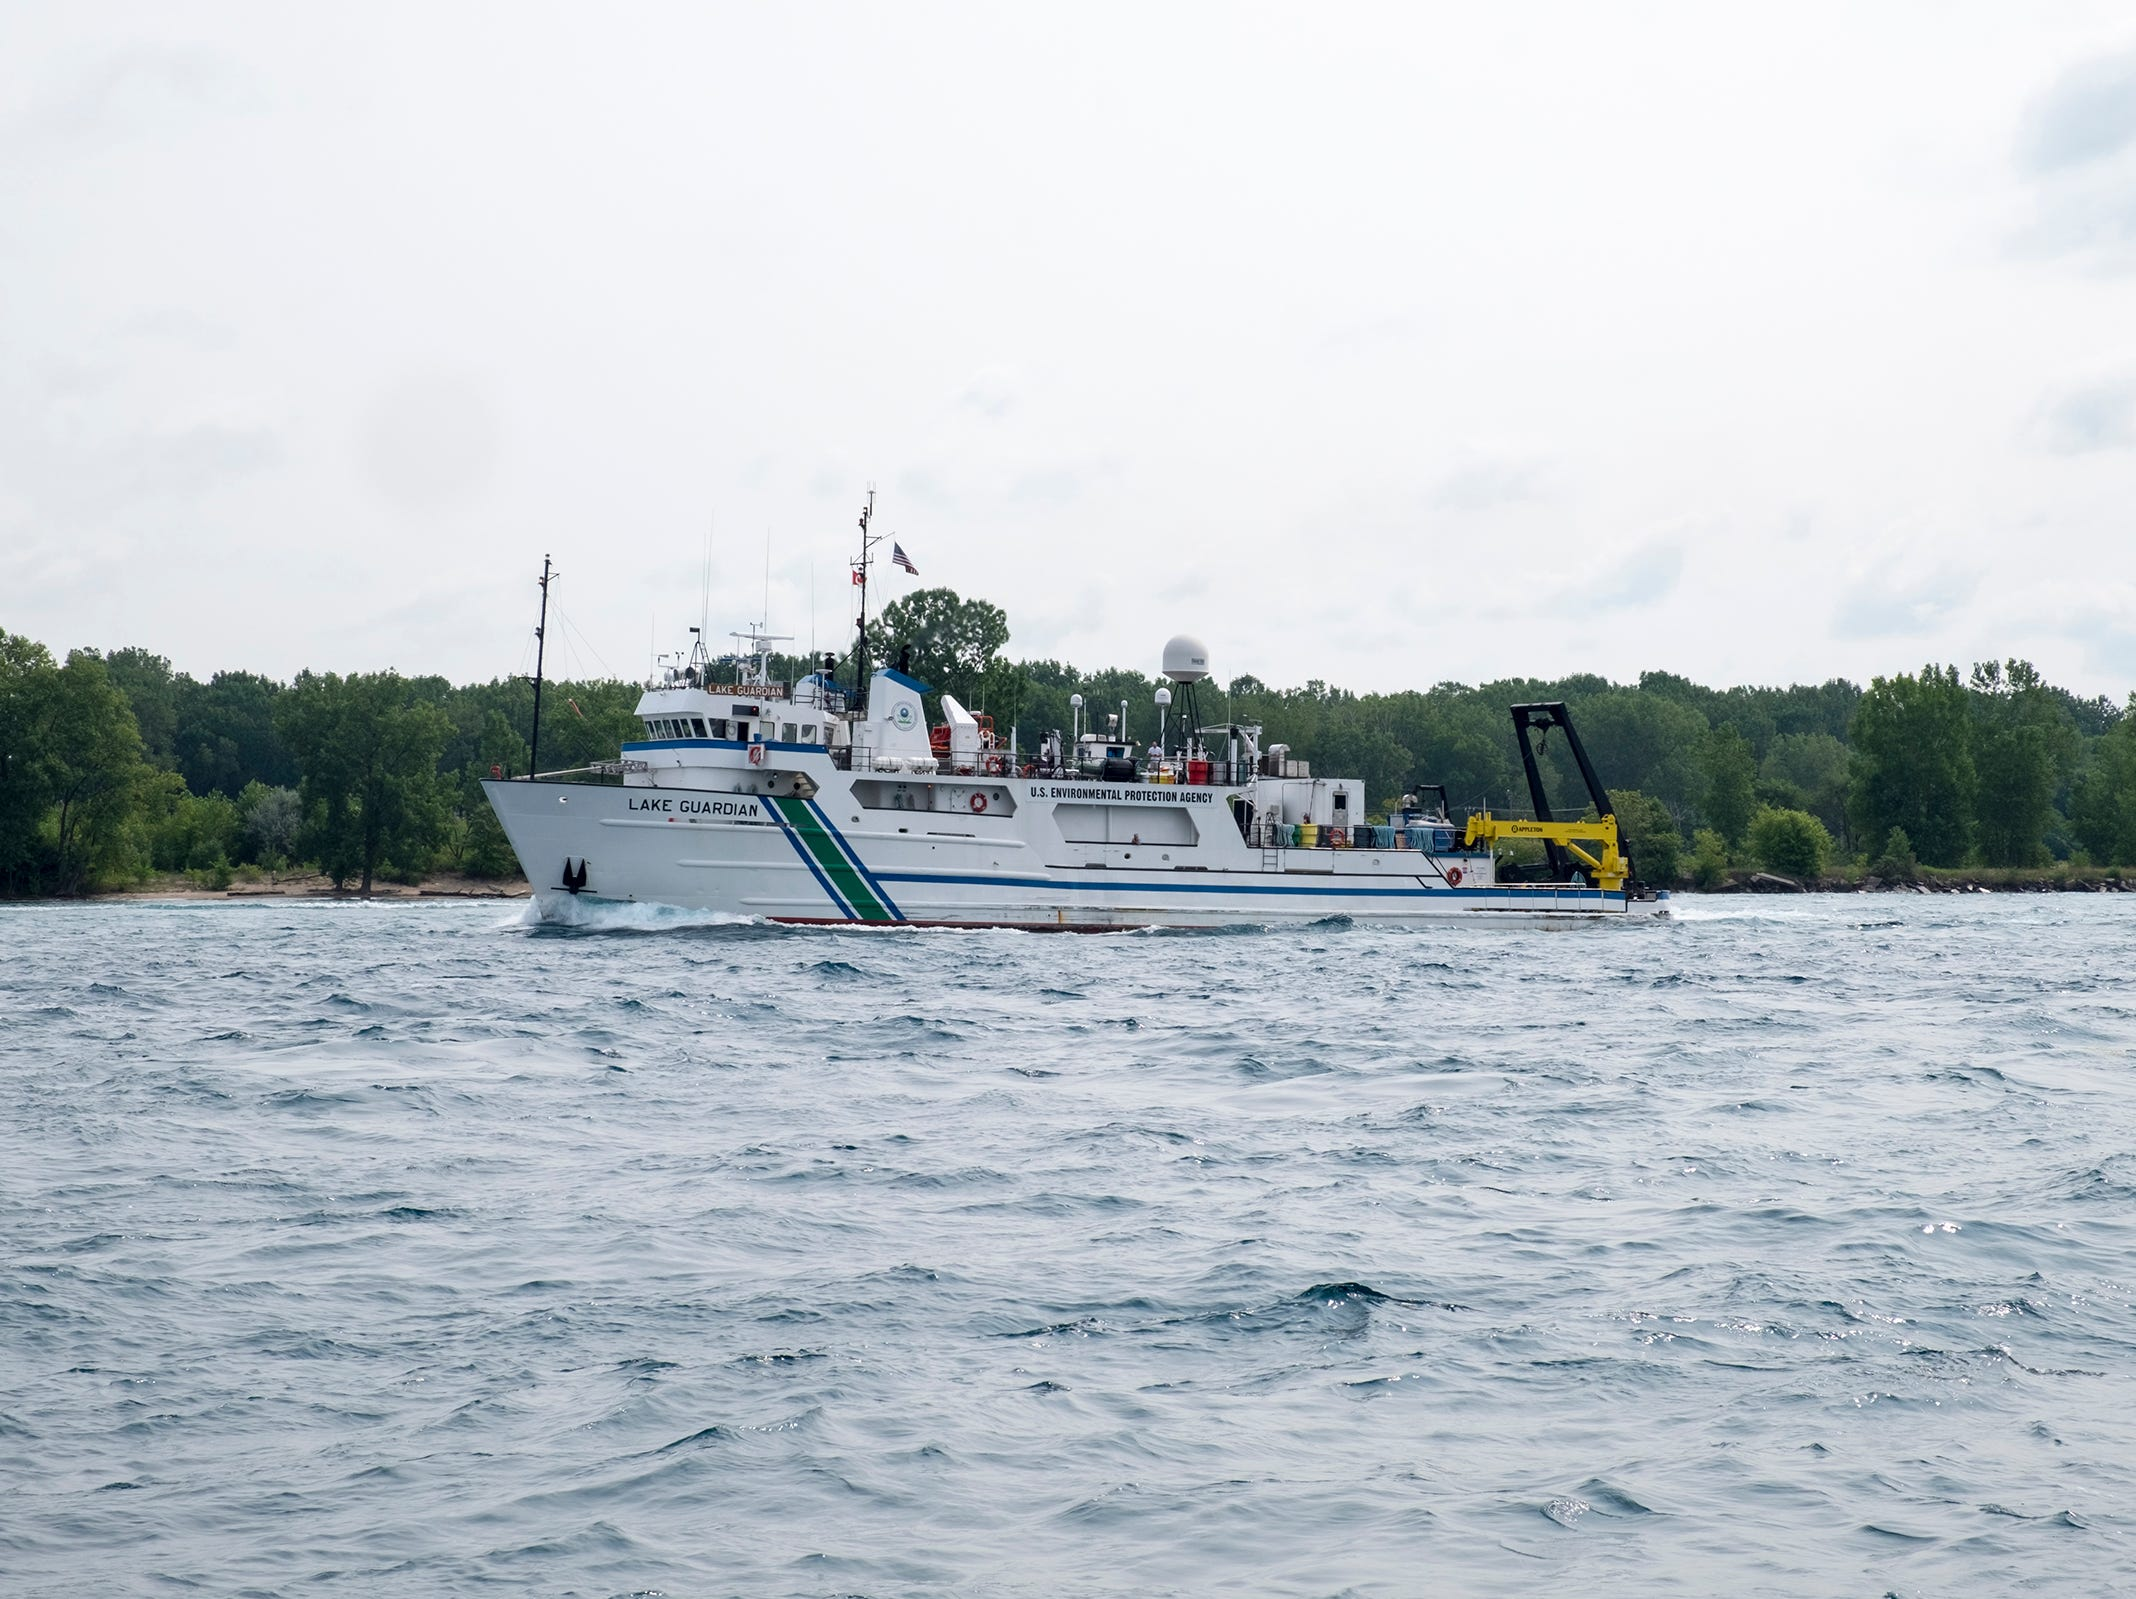 The U.S. Environmental Protection Agency Lake Guardian is seen upbound on the St. Clair River Sunday, Aug. 19, 2018, before the annual Float Down launches from Lighthouse Beach.